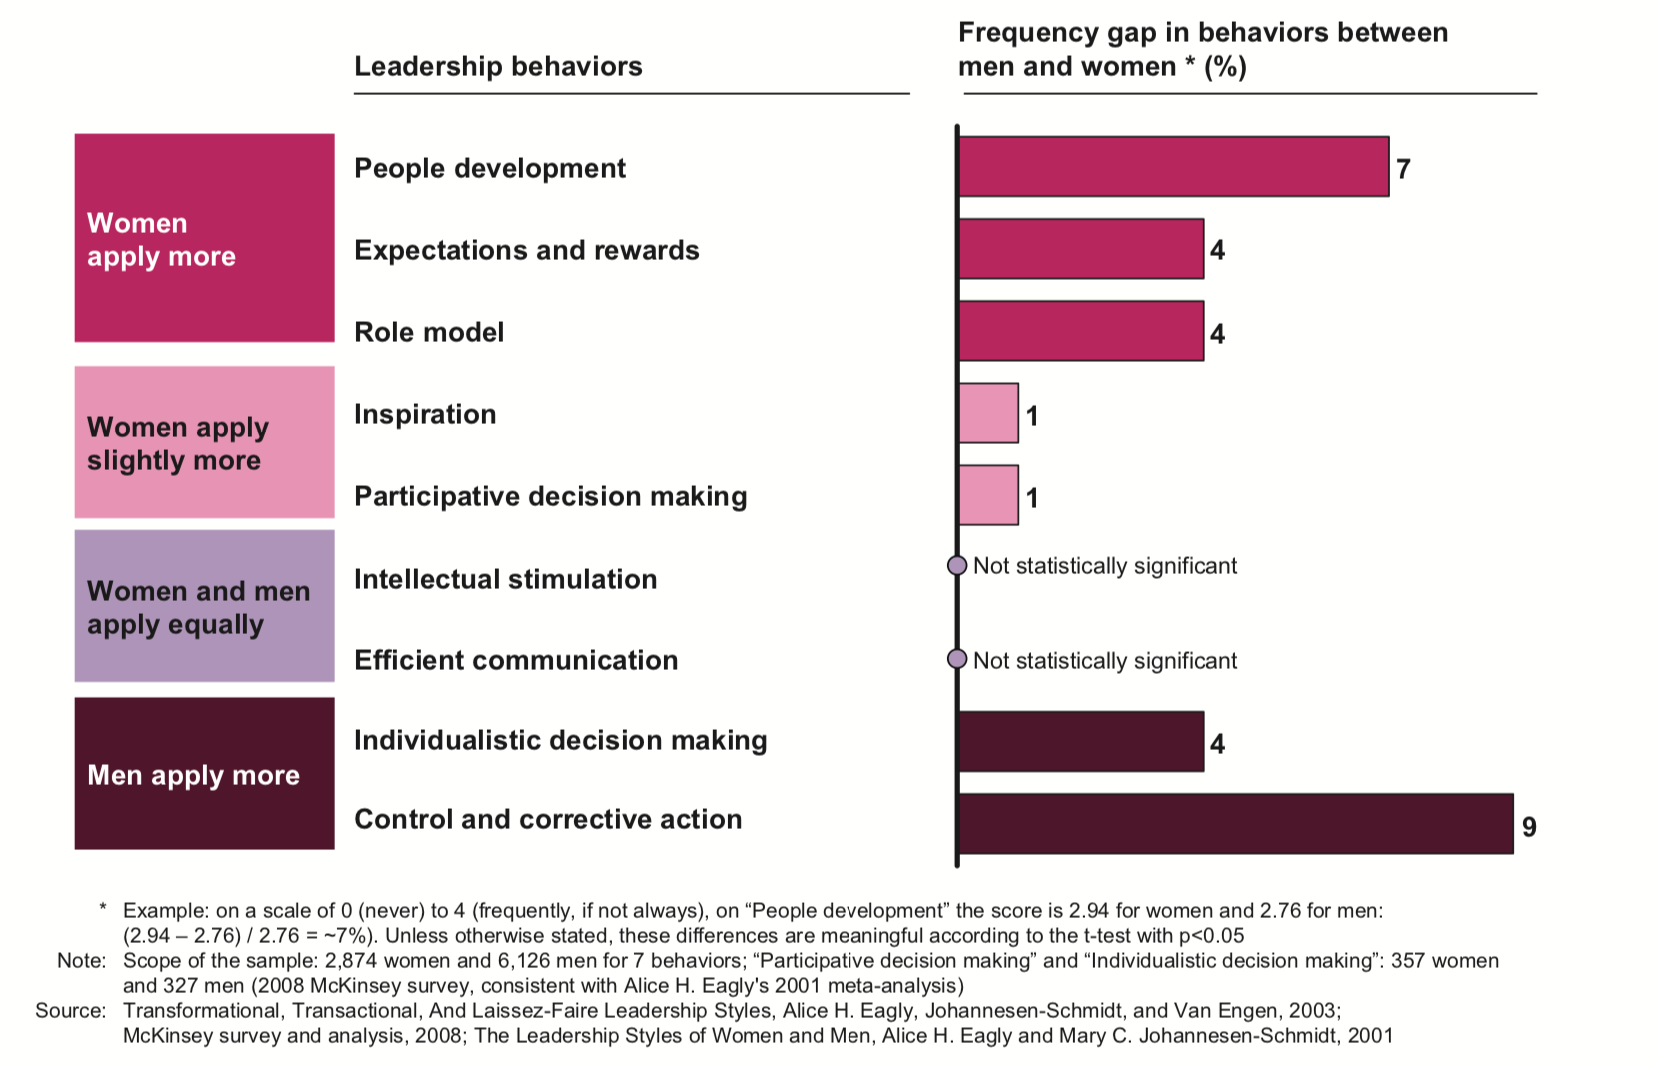 Leadership behaviors shown by men and women